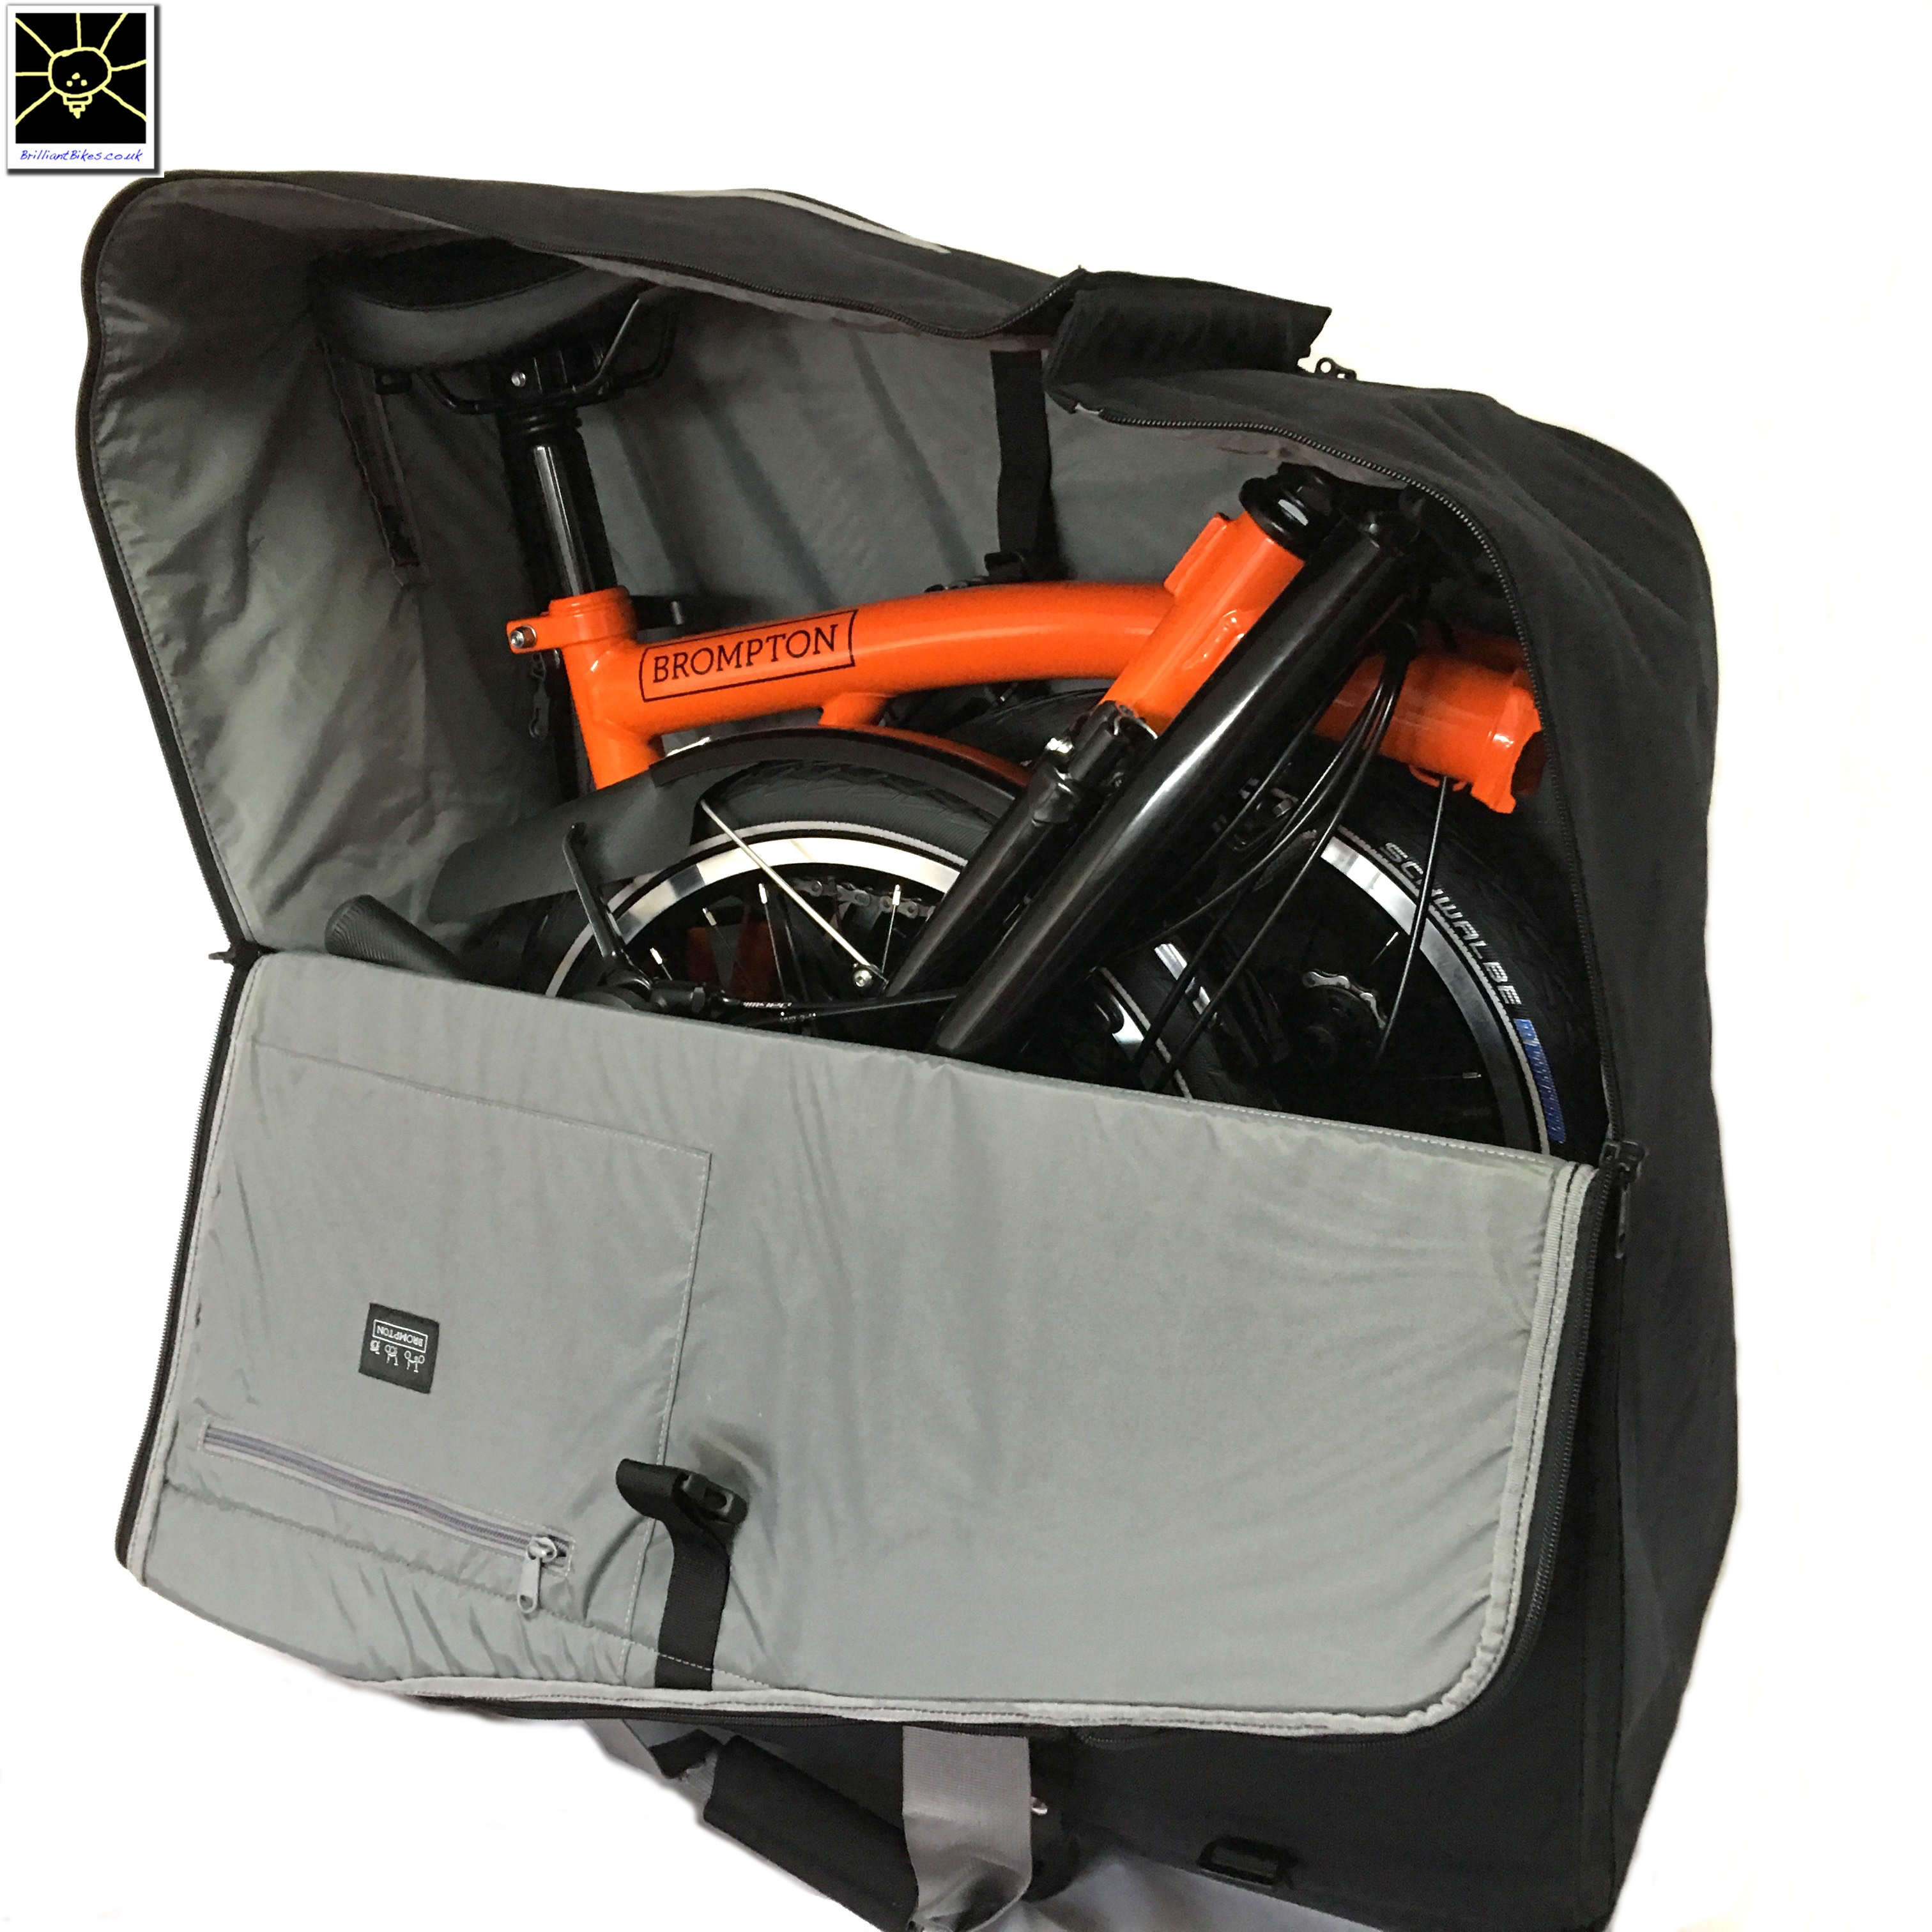 6ef9cdb3b Brompton travel bag - the NEW bag for carrying your Brompton